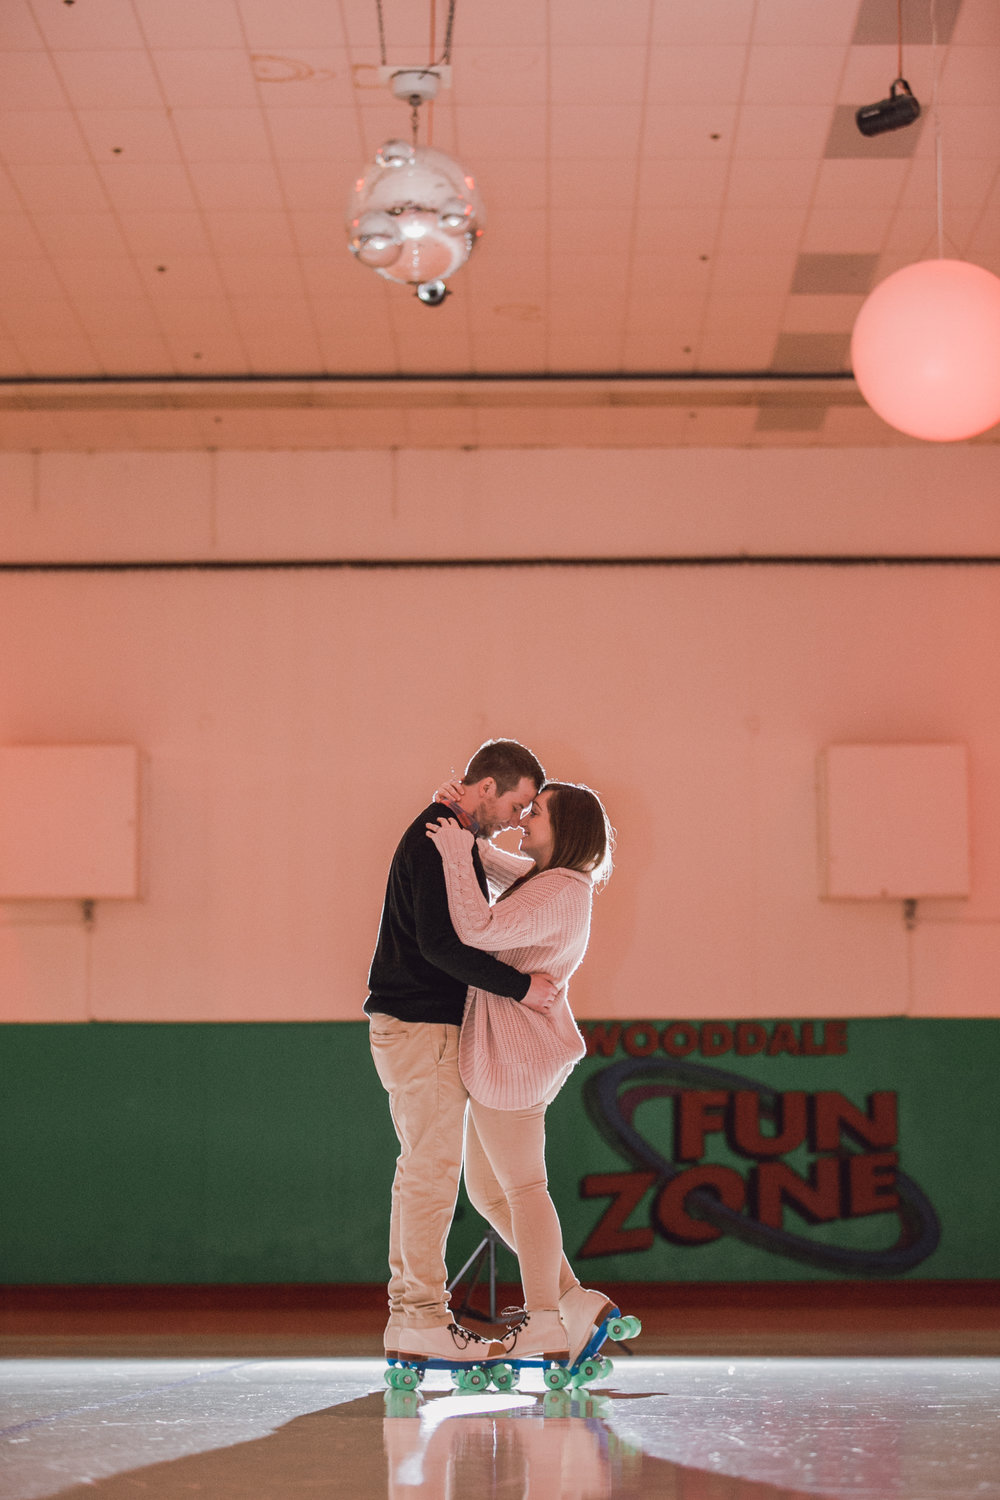 roller rink engagement session, wooddale fun zone engagement session, roller skate engagement session, minneapolis cafe lucrat engagment session, cafe lucrat engagement session, minneapolis minnesota engagement session-www.rachelsmak.com19.jpg